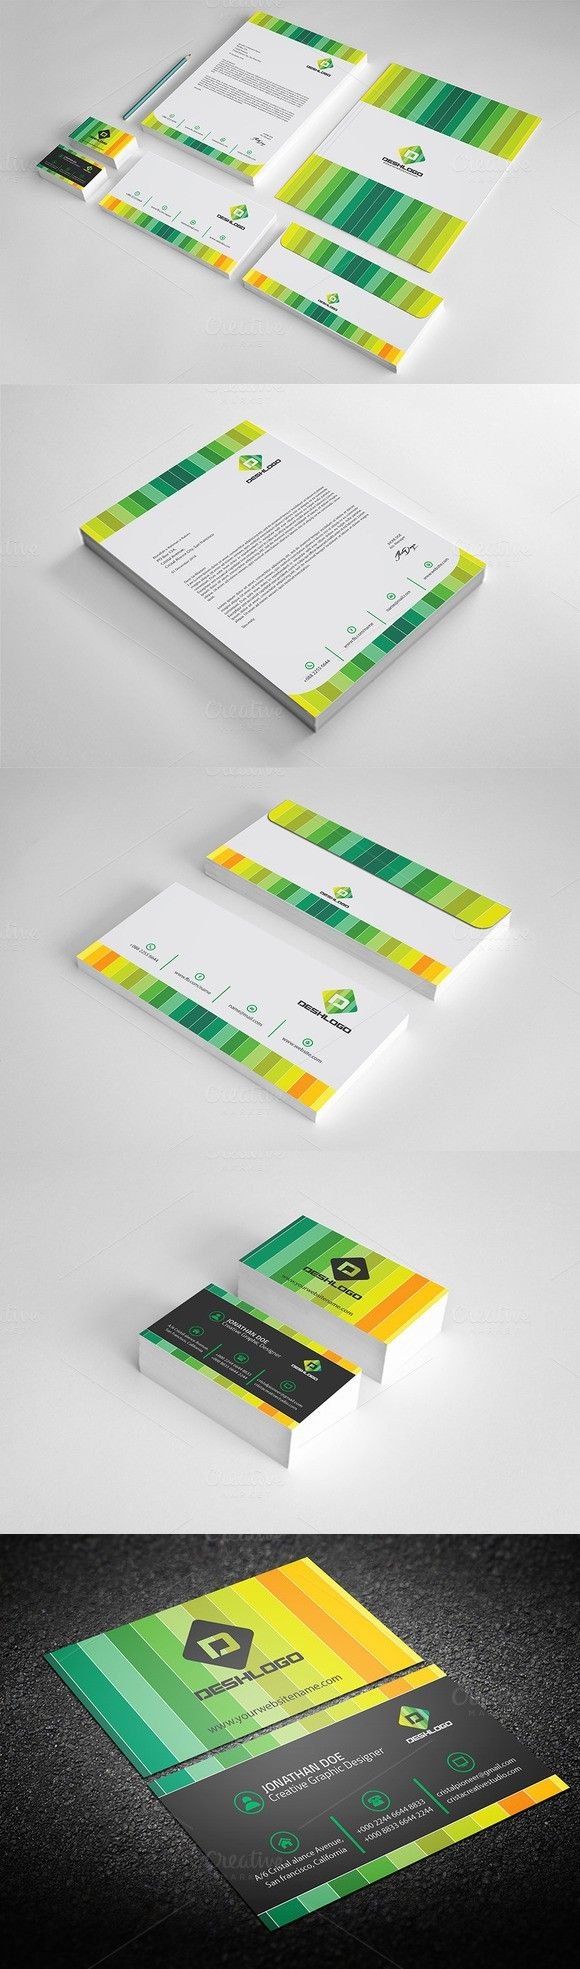 Corporate Stationery Template. Stationery Templates